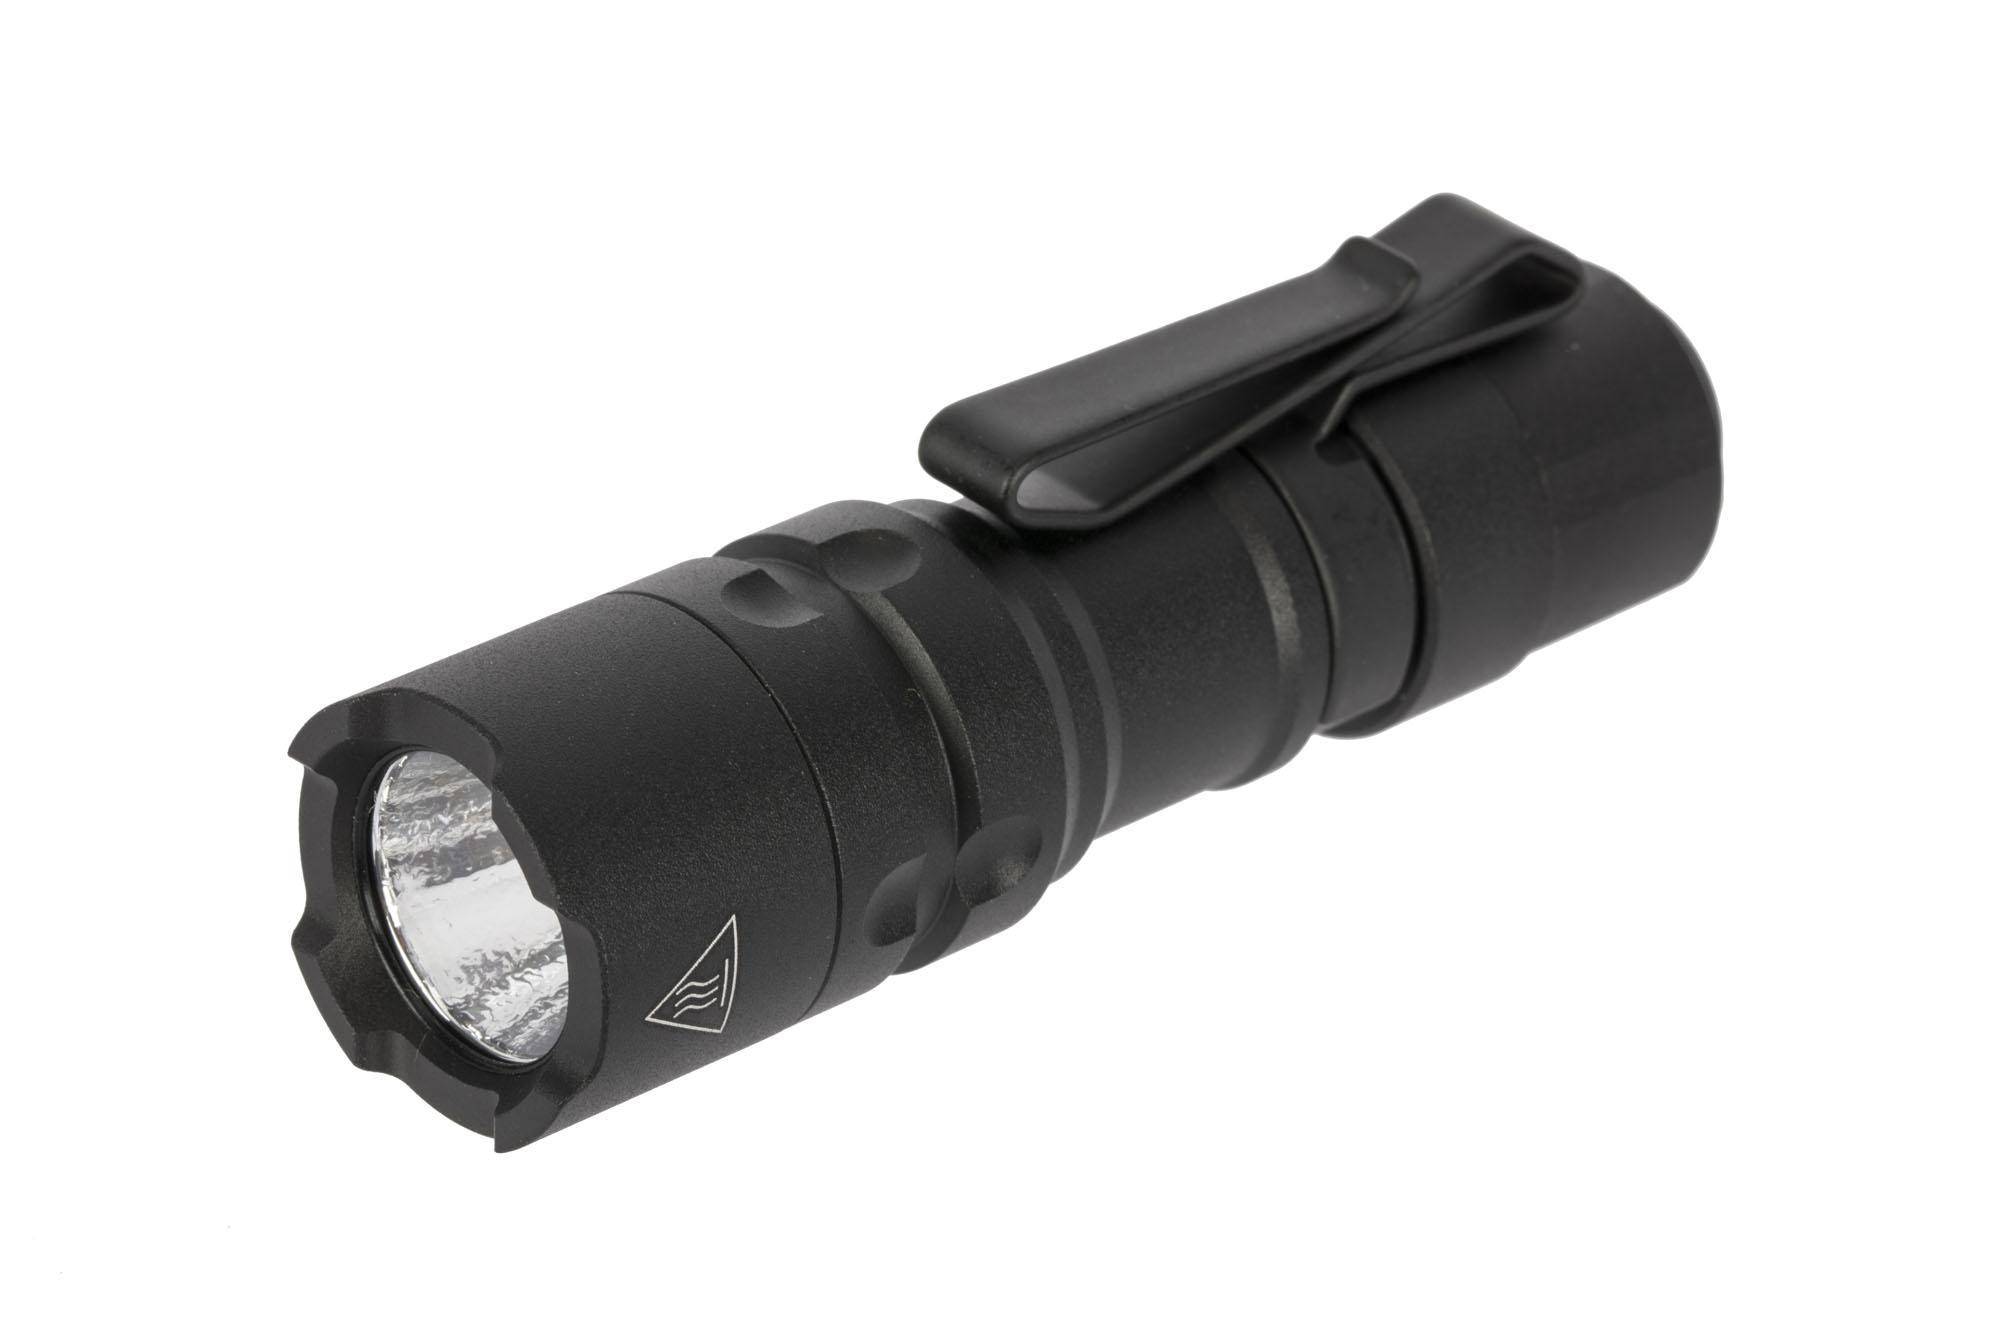 discontinued web cmr light beauty universal rail glock crimson trace master tactical official